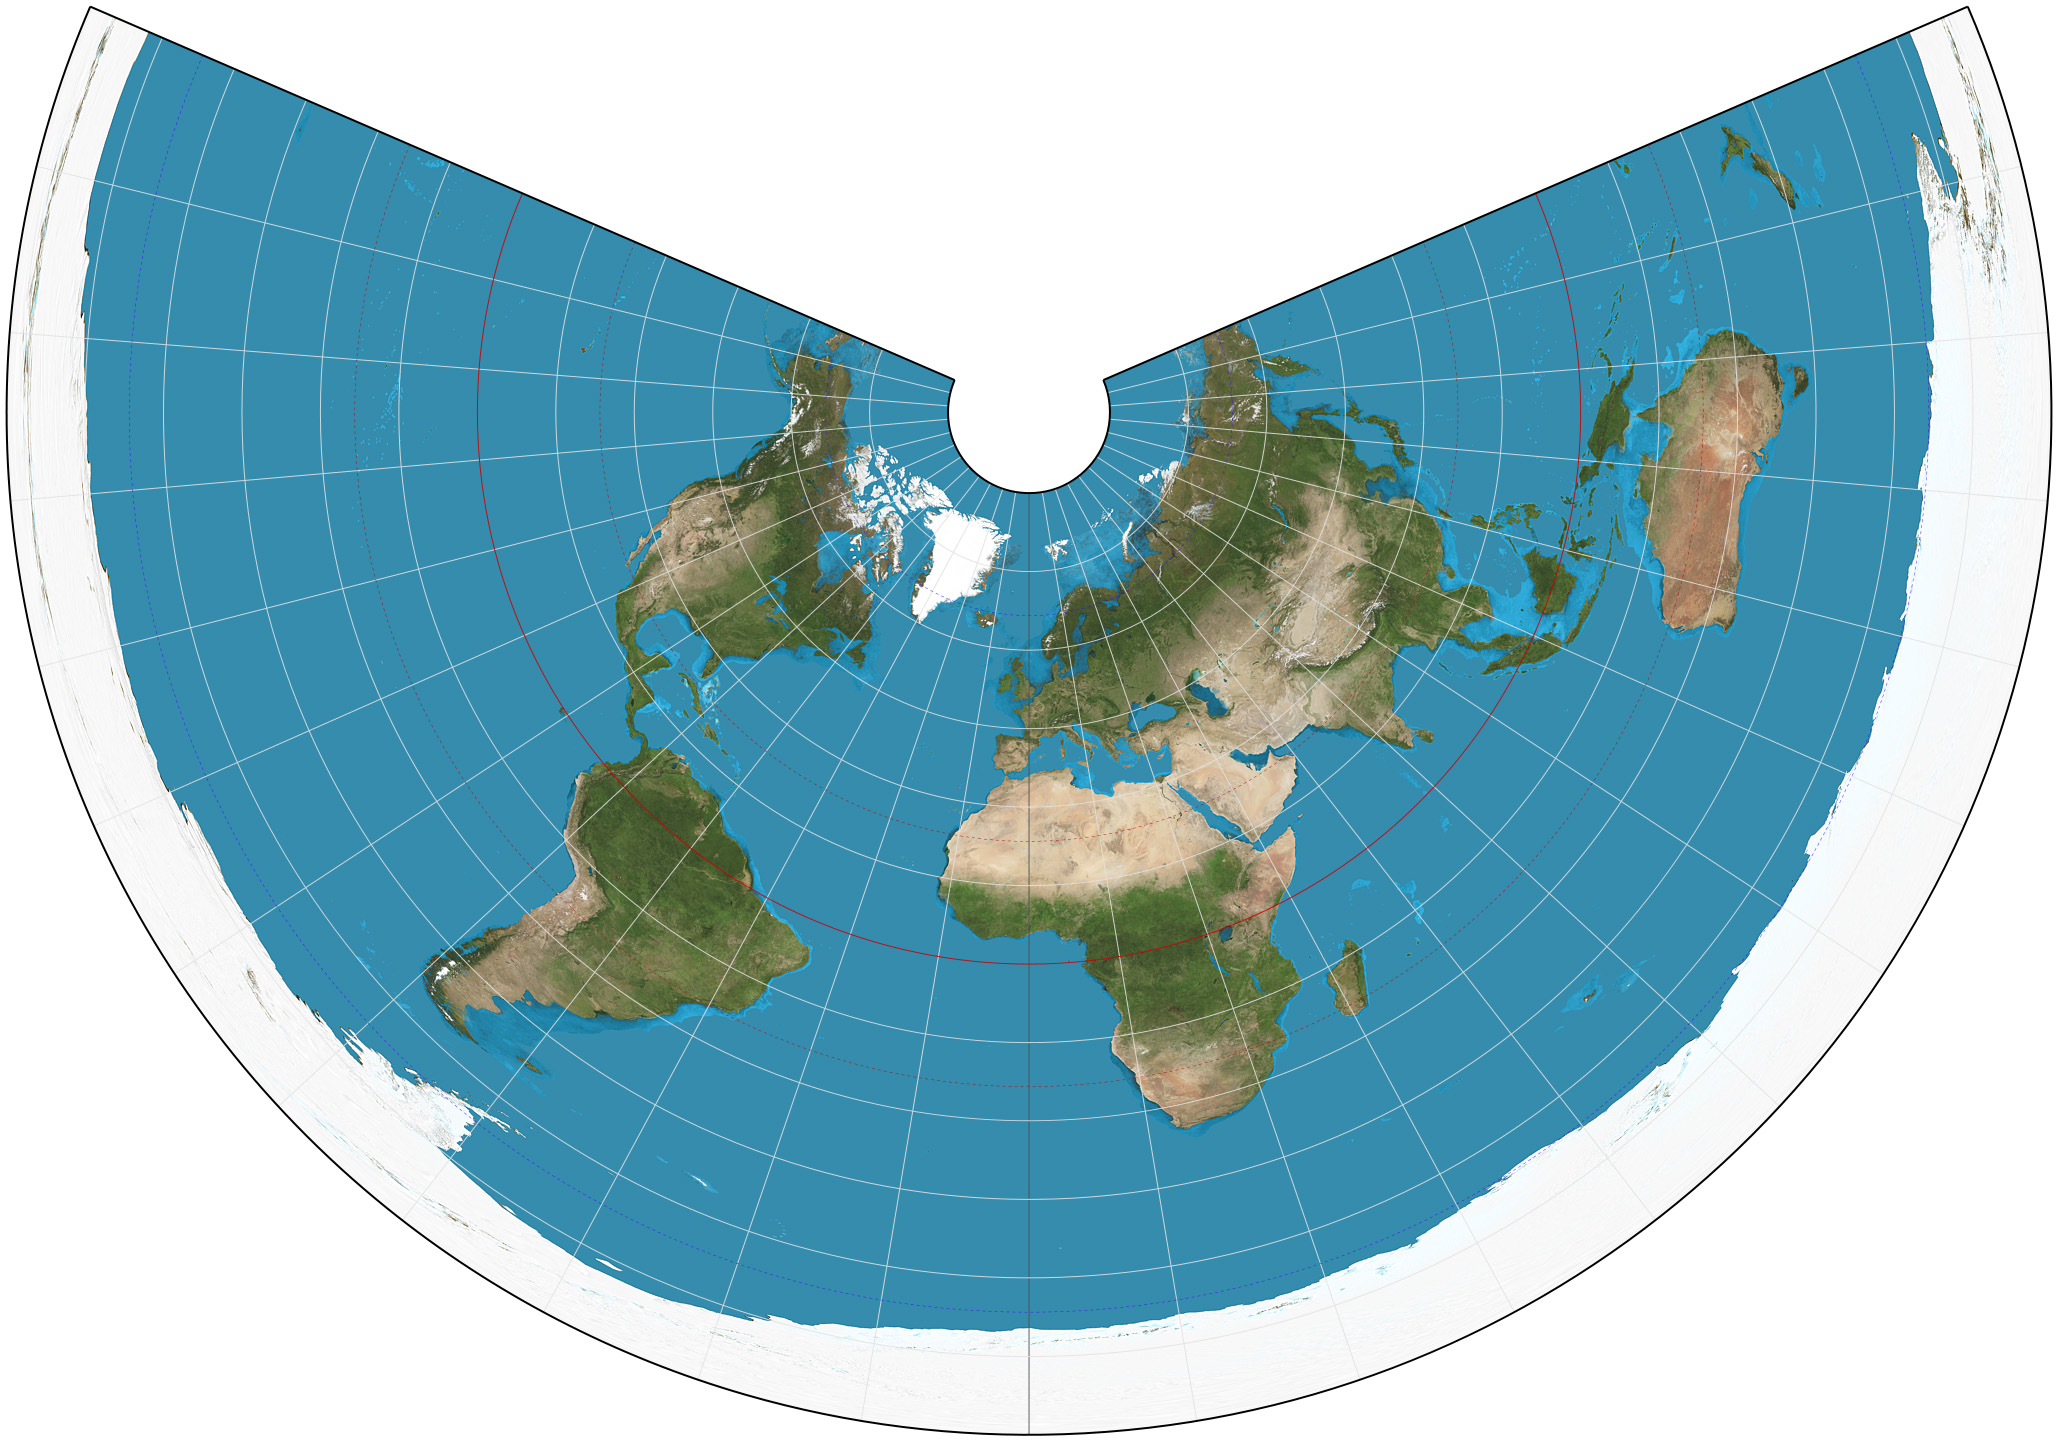 equidistant projection Montreal is roughly equidistant from new york, boston, and toronto recent examples of equidistant from the web yin explains that the professor uses what's called an azimuthal equidistant map projection.